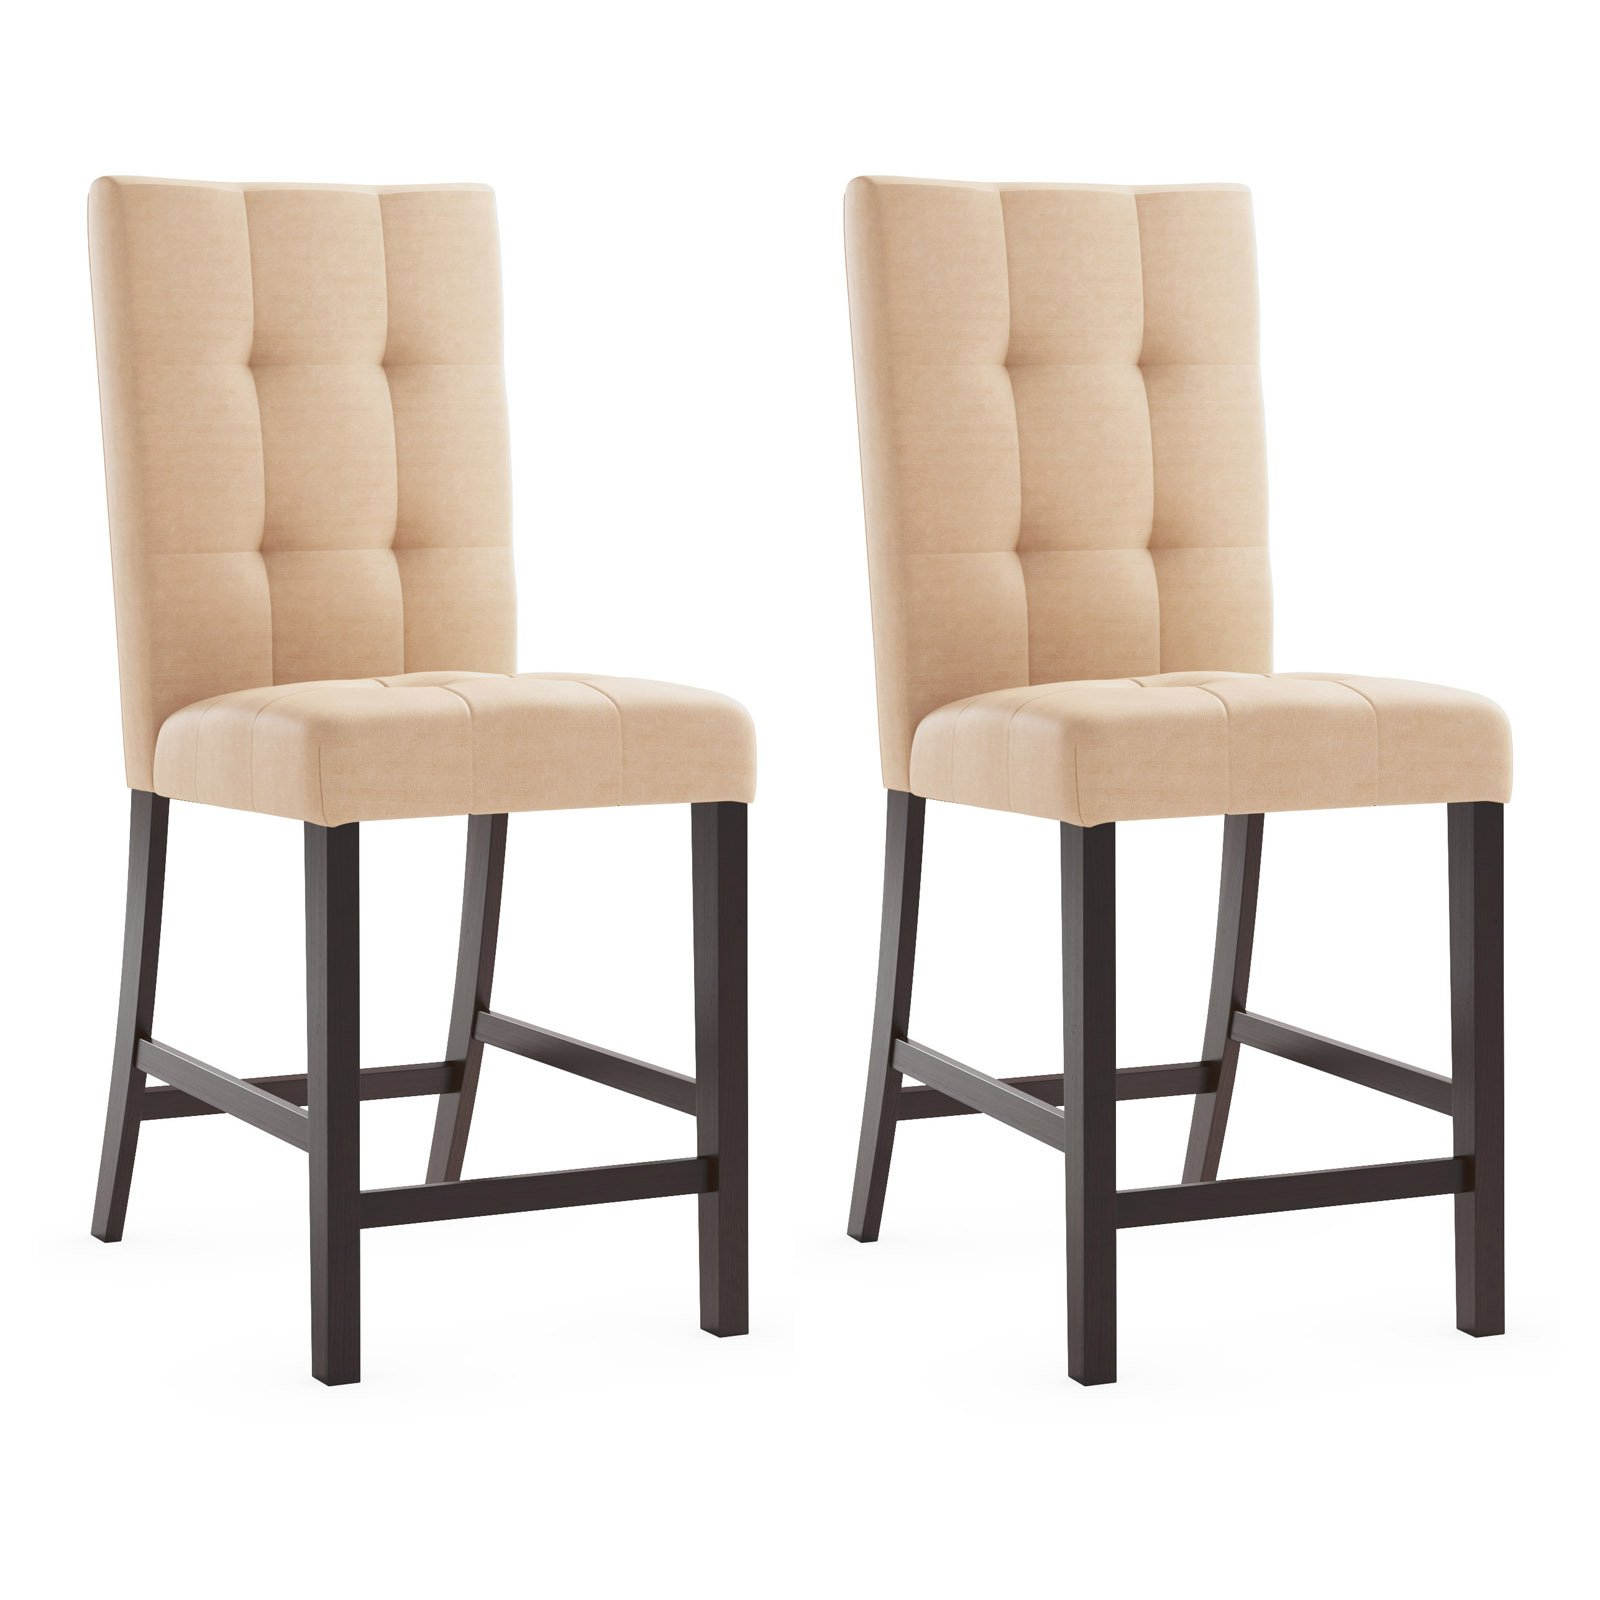 Wooden Dining Chairs | Navy Dining Room Chairs | Tufted Dining Chair